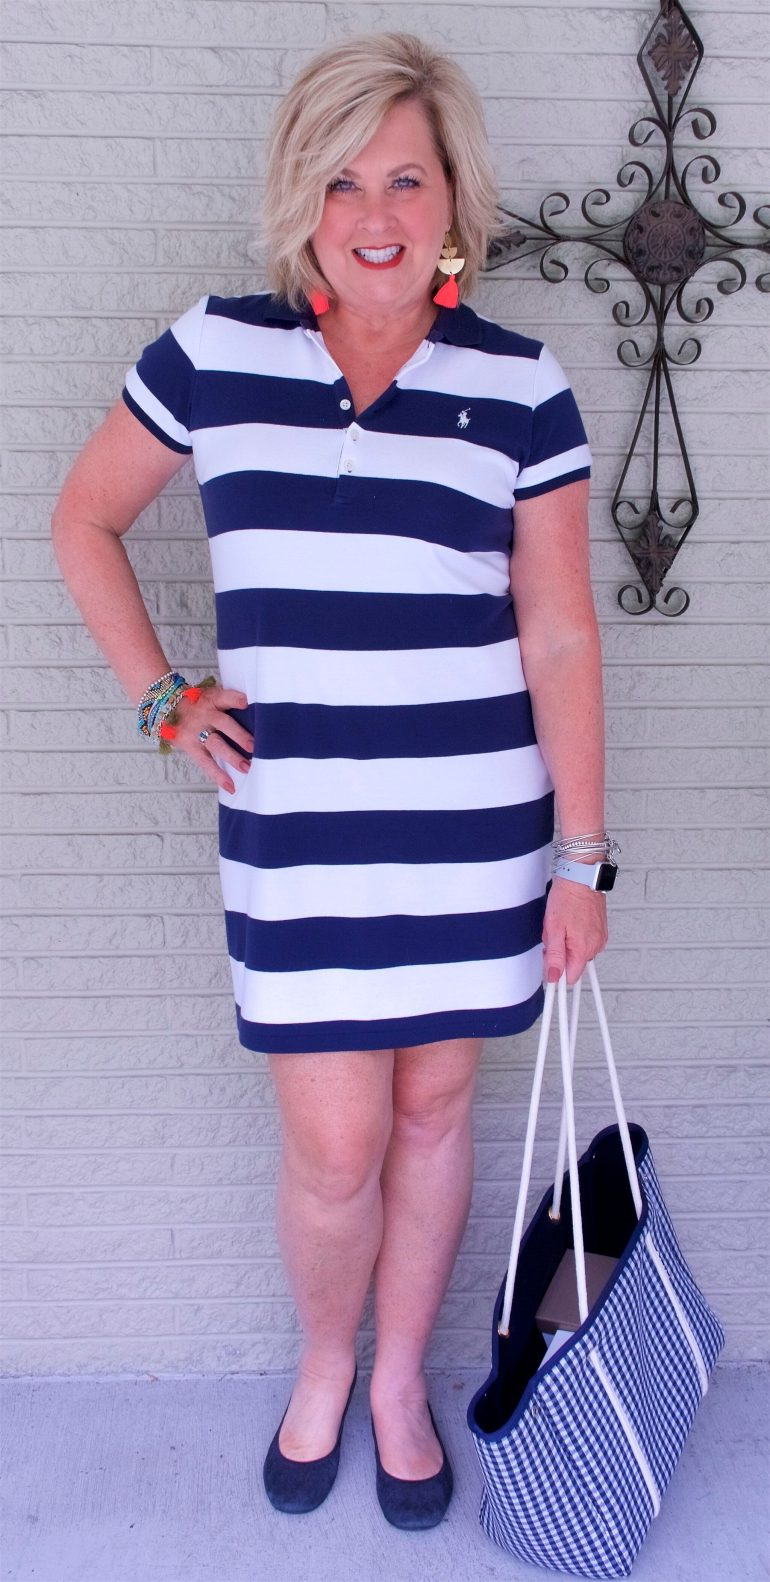 50 IS NOT OLD | A STRIPED T-SHIRT DRESS IS CLASSIC AND COMFORTABLE | FASHION OVER 40